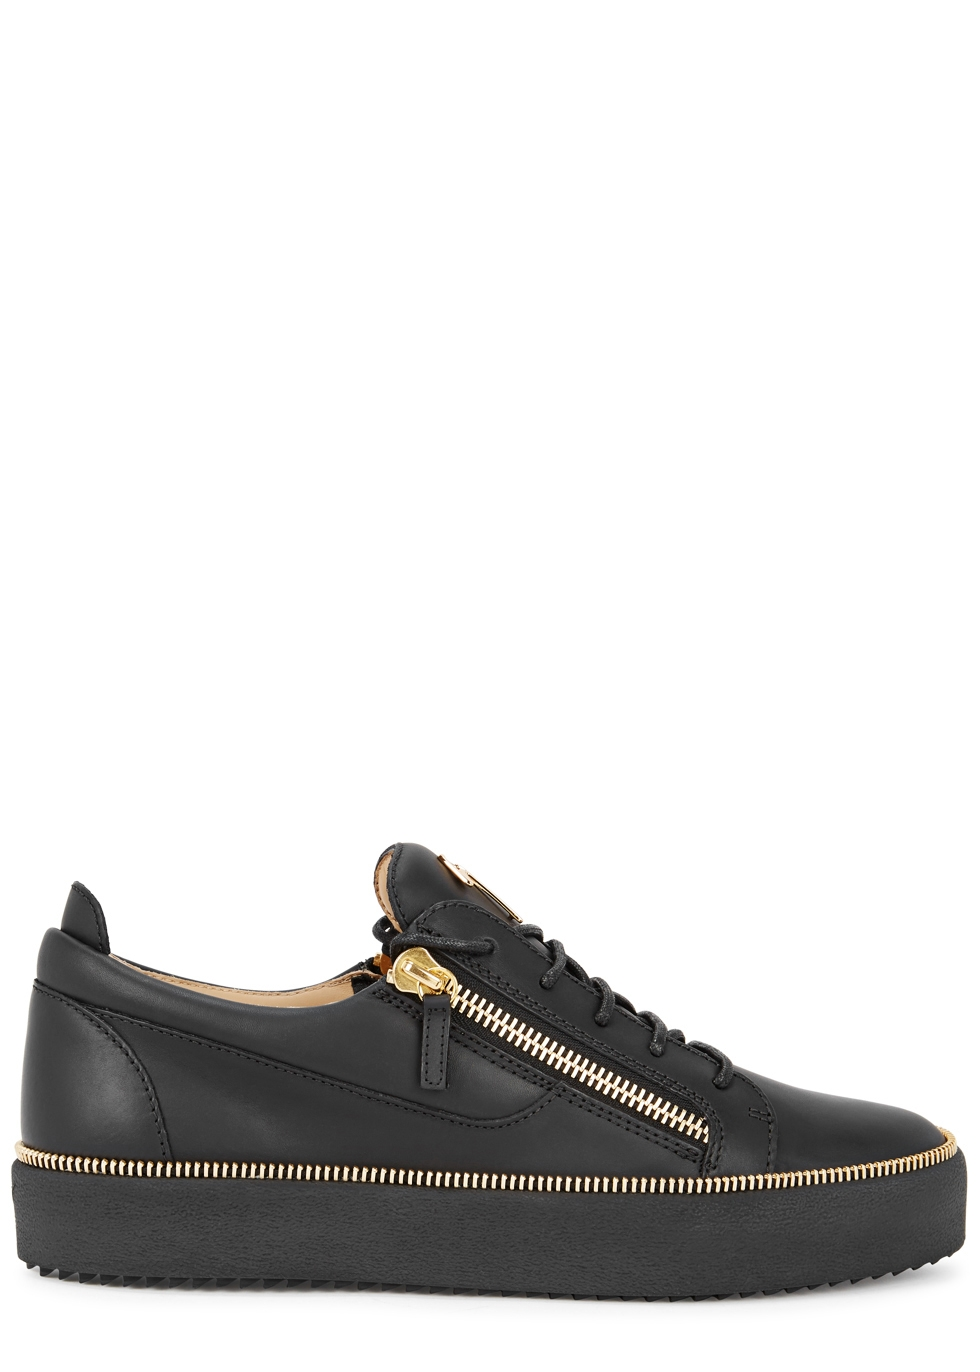 GIUSEPPE ZANOTTI FRANKIE BLACK LEATHER TRAINERS